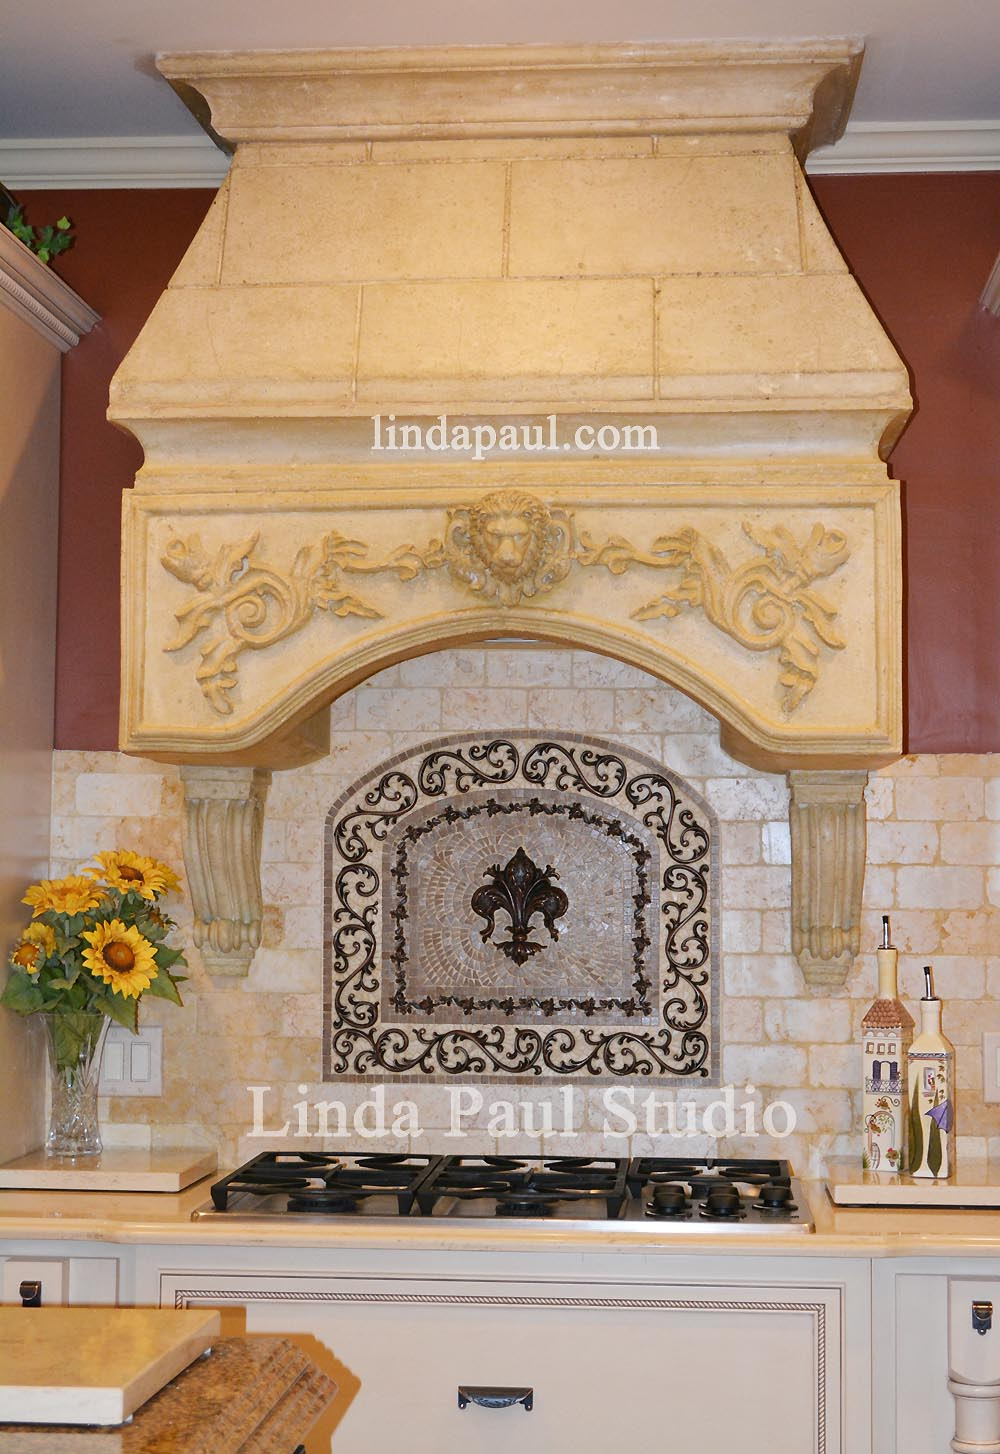 Stunning Kitchen Backsplash Idea With Medallion And Faux Stone Hood